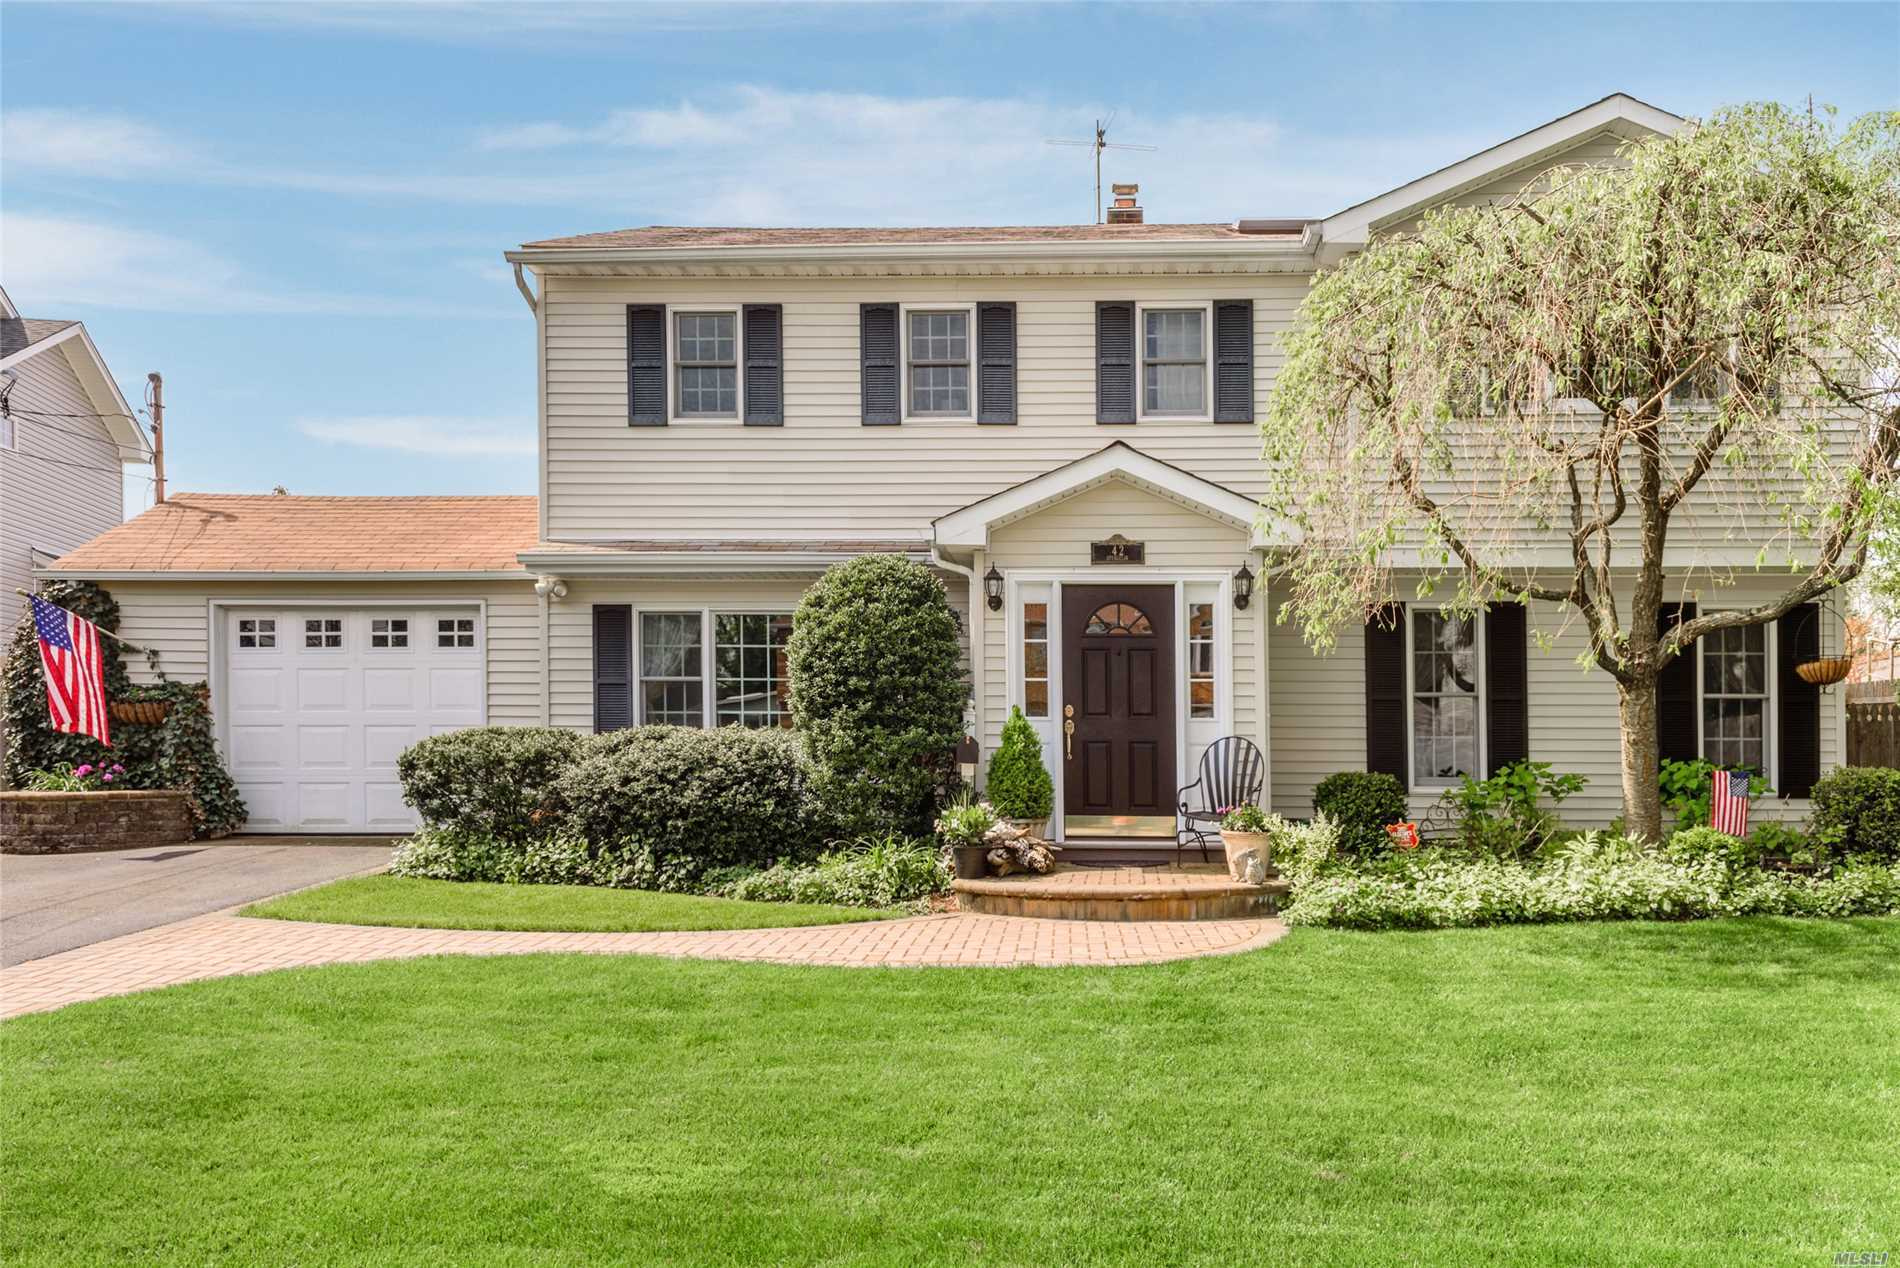 N. Syosset. Pristine and perfect classic 4 bedroom 2 full bath colonial situated mid block on a beautiful tree - lined street. An absolute 10 for curb appeal with classic lines and gorgeous landscaping. Loaded. Close to Village of Syosset, LIRR and Syosset schools.